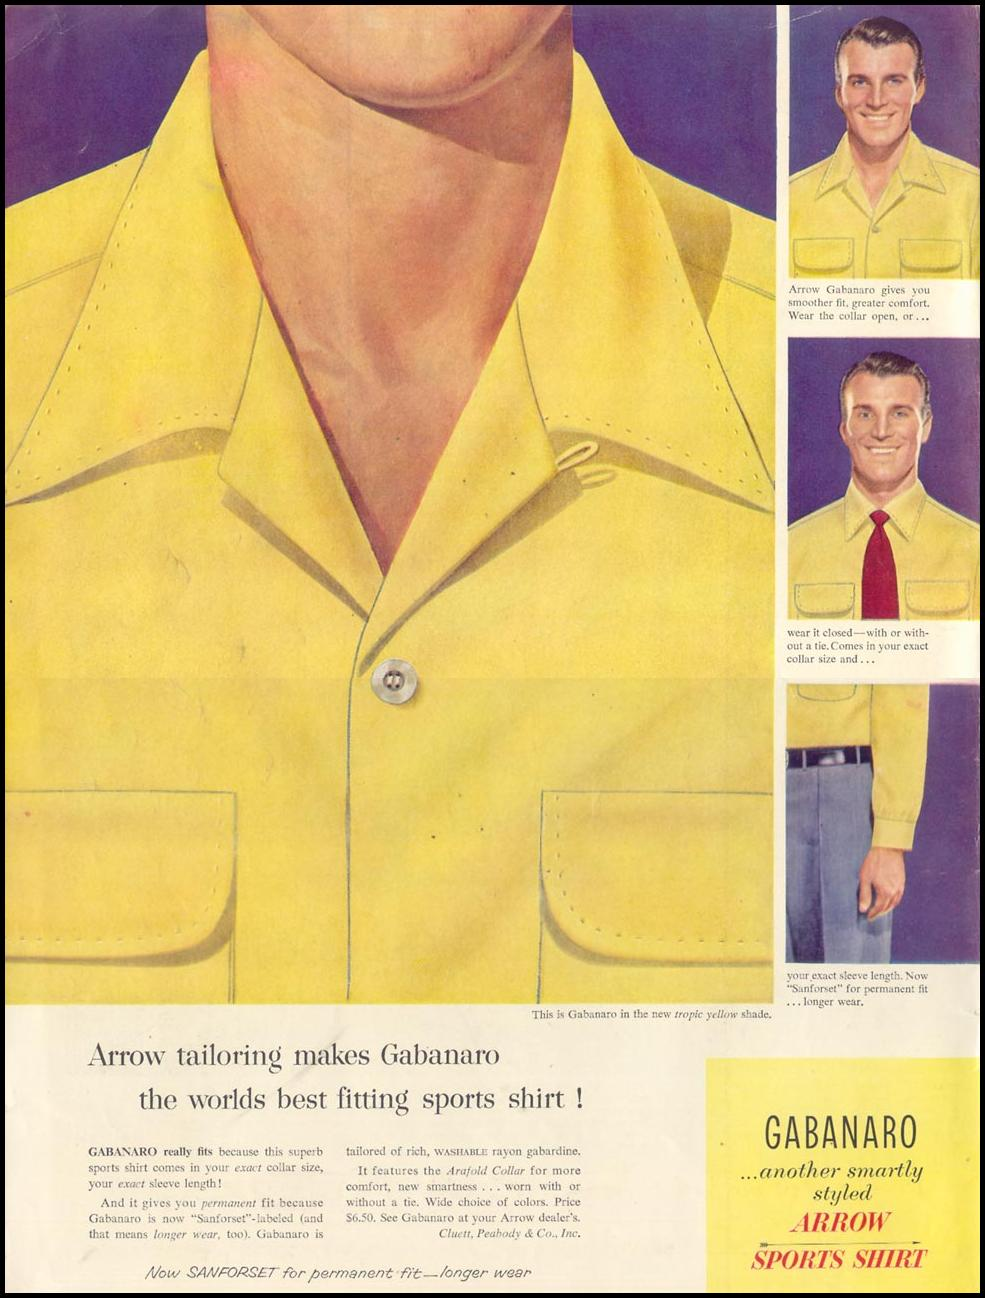 ARROW GABANARO SPORTS SHIRT LIFE 02/02/1953 INSIDE FRONT